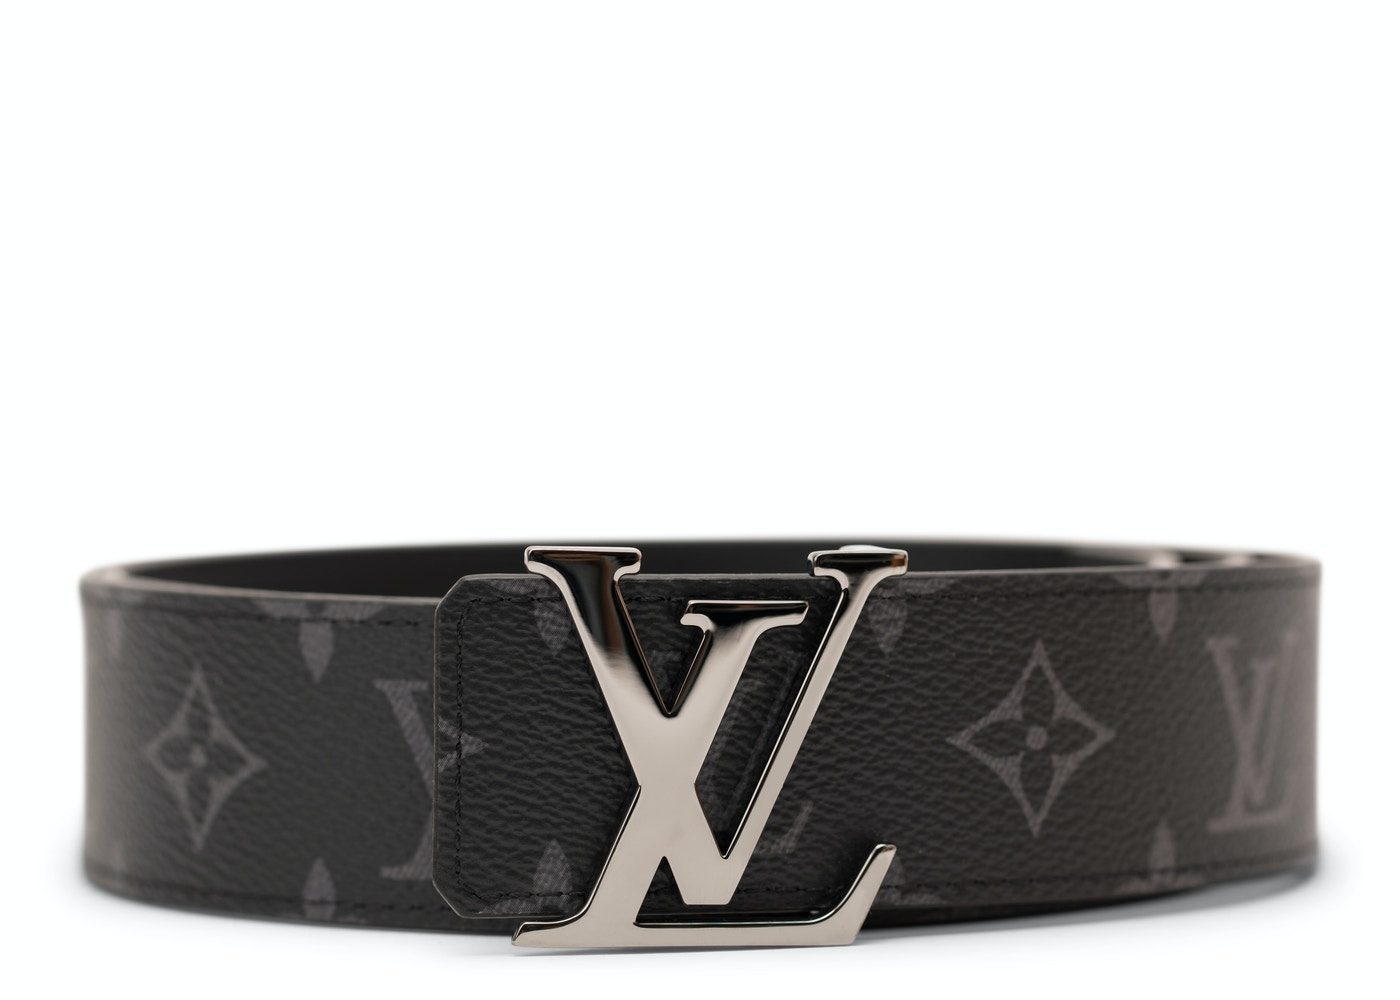 c676eb03ecb3 Louis Vuitton Initiales Belt Monogram Eclipse Black Gray. Monogram Eclipse  Black Gray